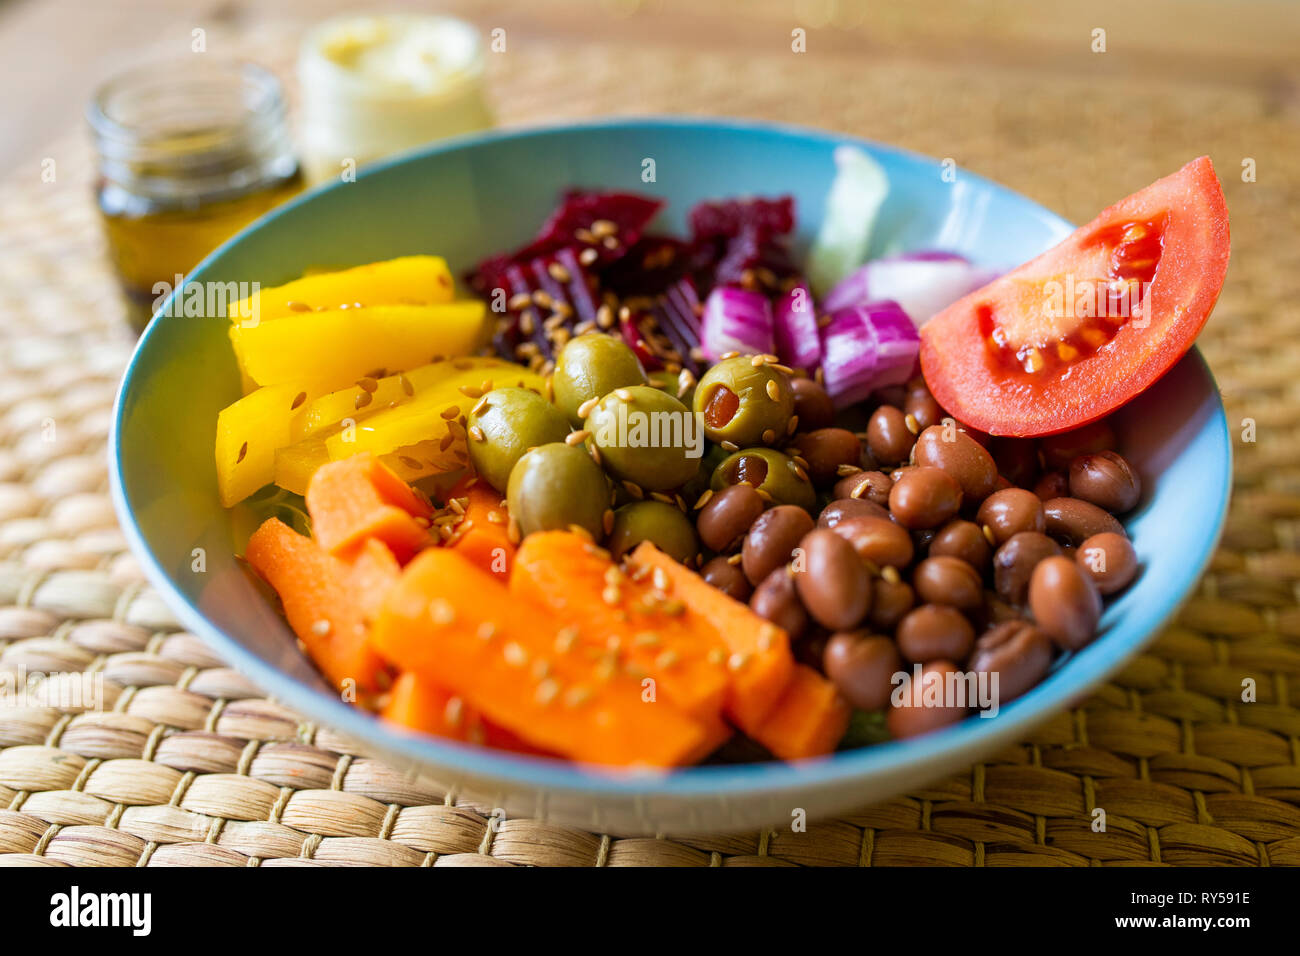 A vibrant vegan buddha bowl filled with colourful vegetables and pulses Stock Photo